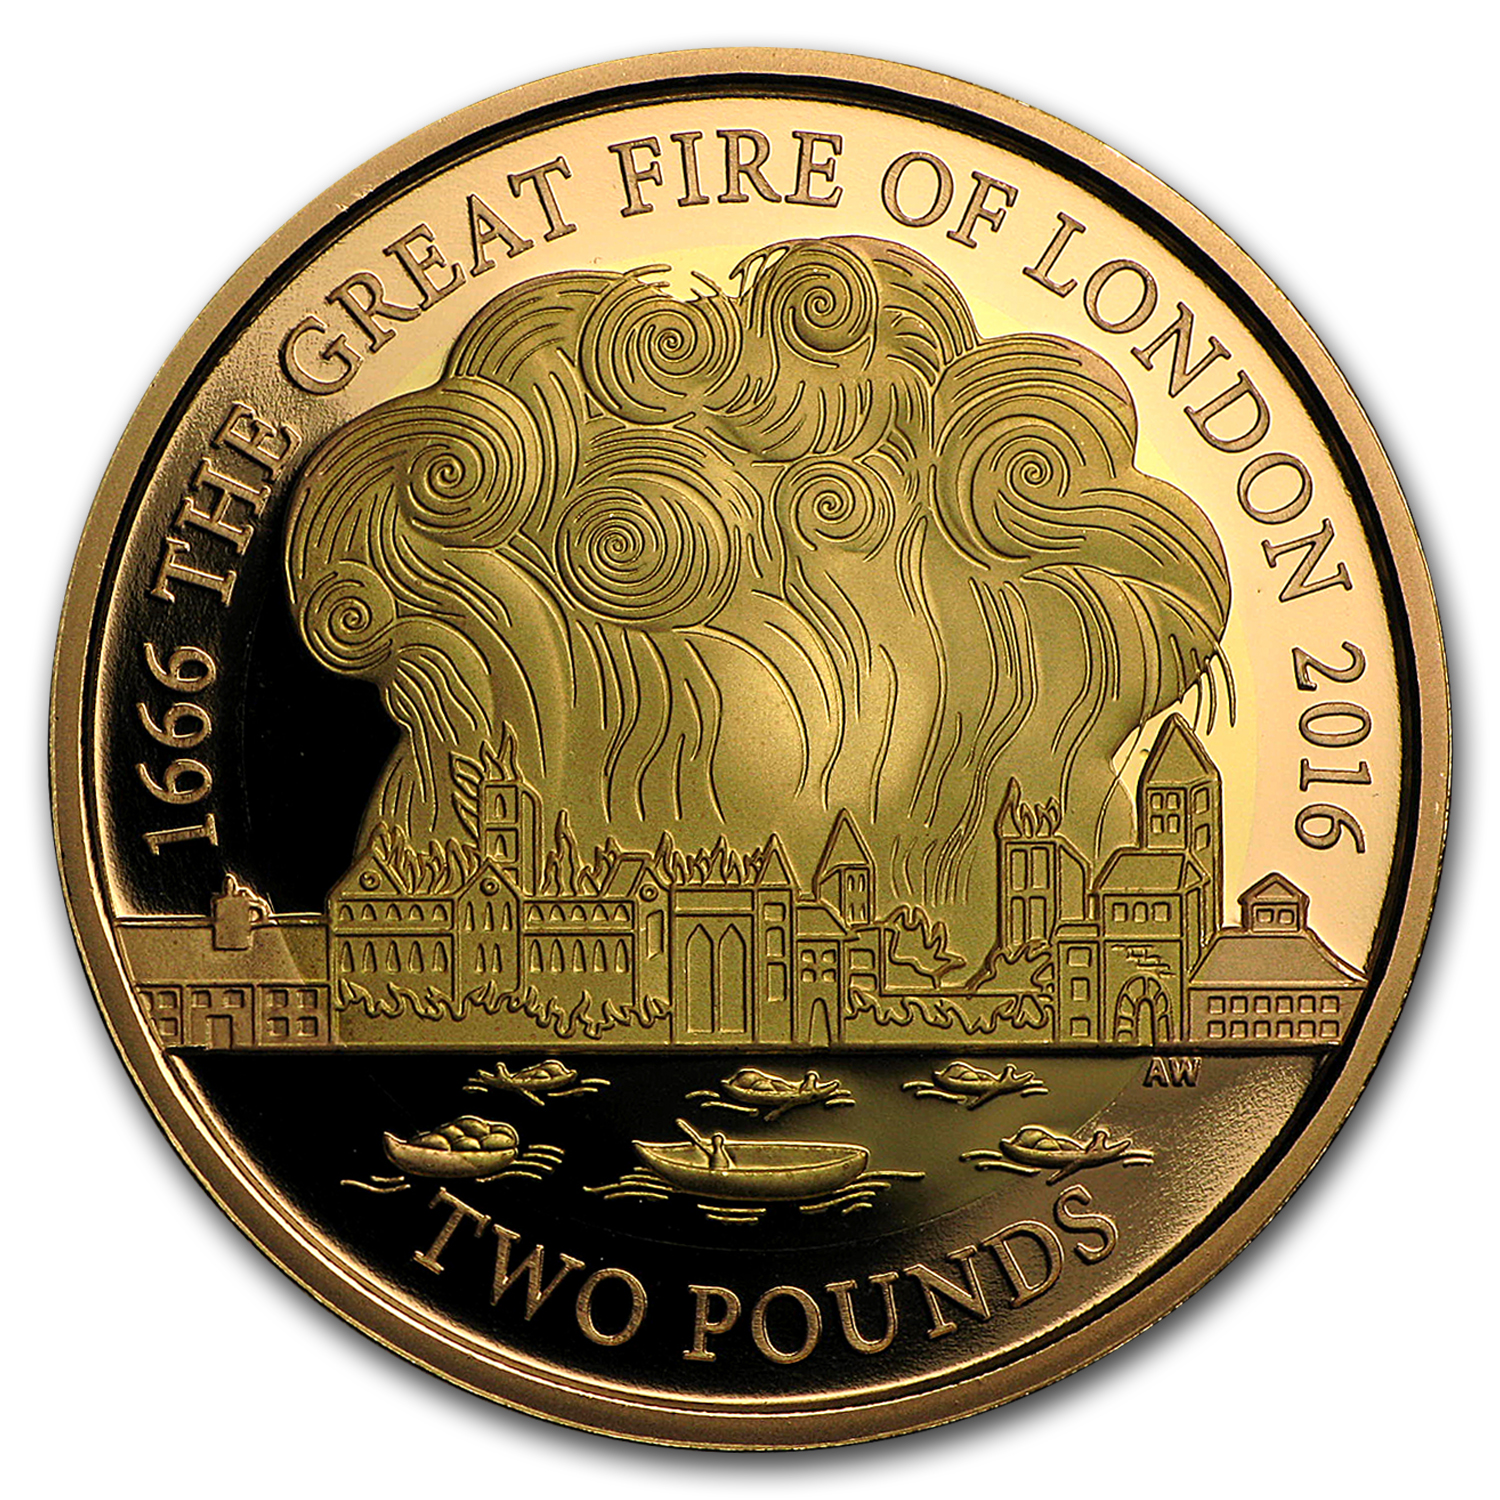 2016 Great Britain £2 Gold Great Fire of London Proof